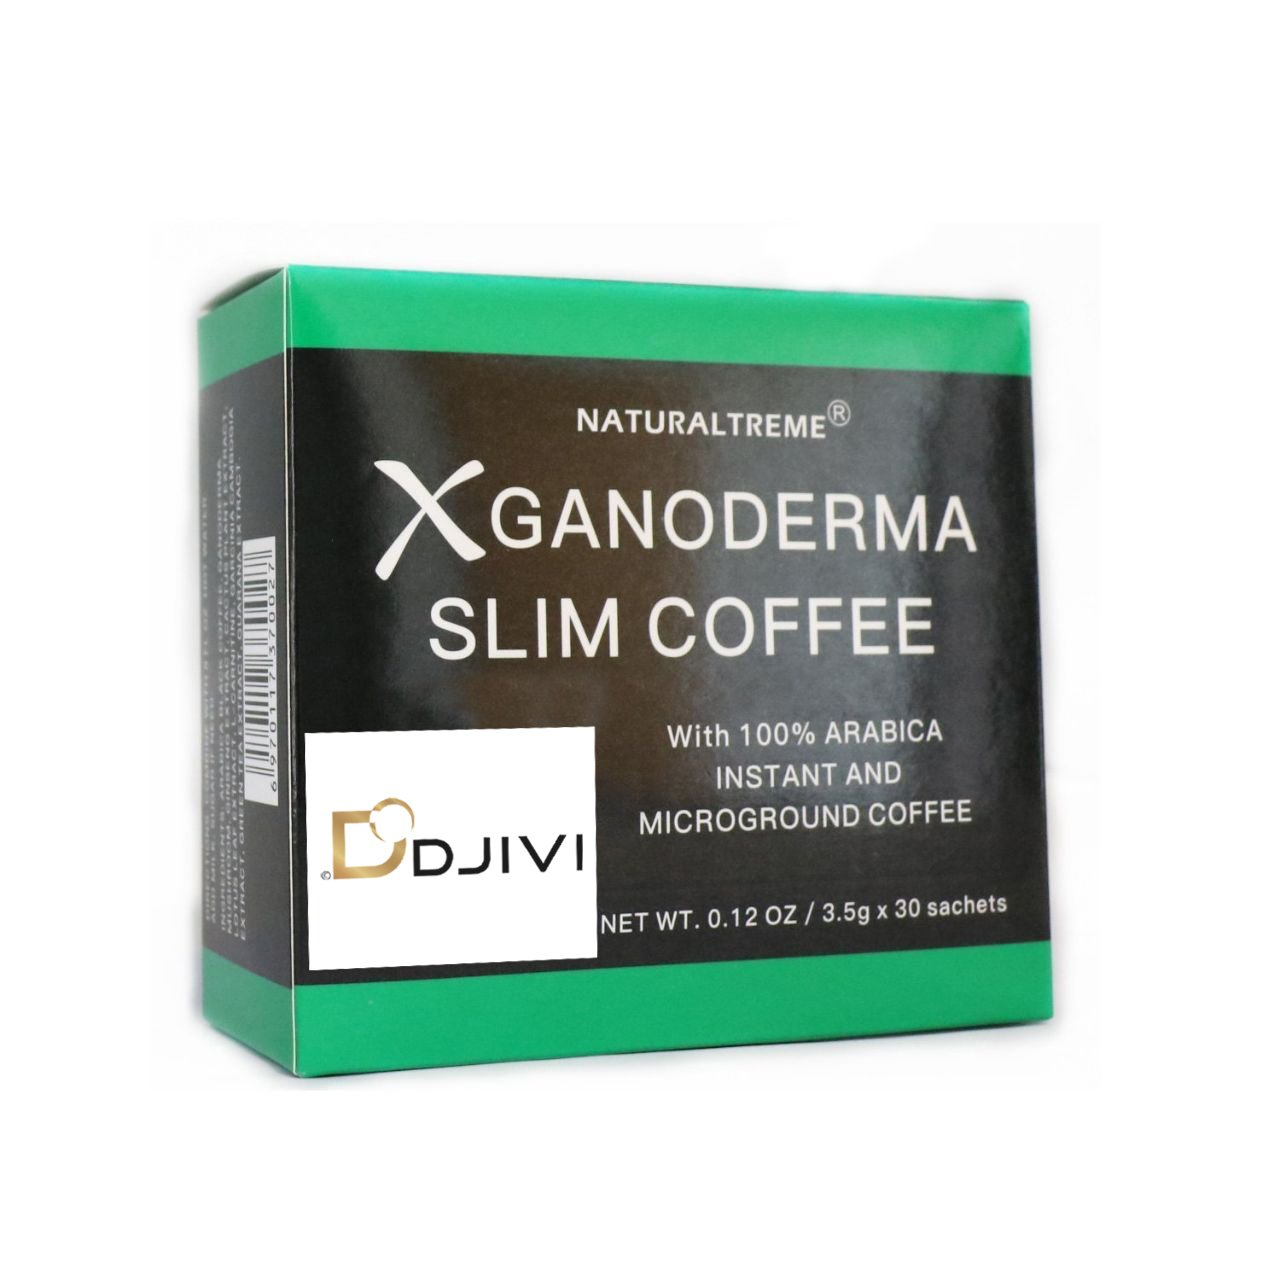 Dodjivi Ganoderma Slim Coffee Weight Loss & Detox 100% Arabica Black Premium Instant Coffee - (1 Box of 30 Sachets) TRTAZ11A